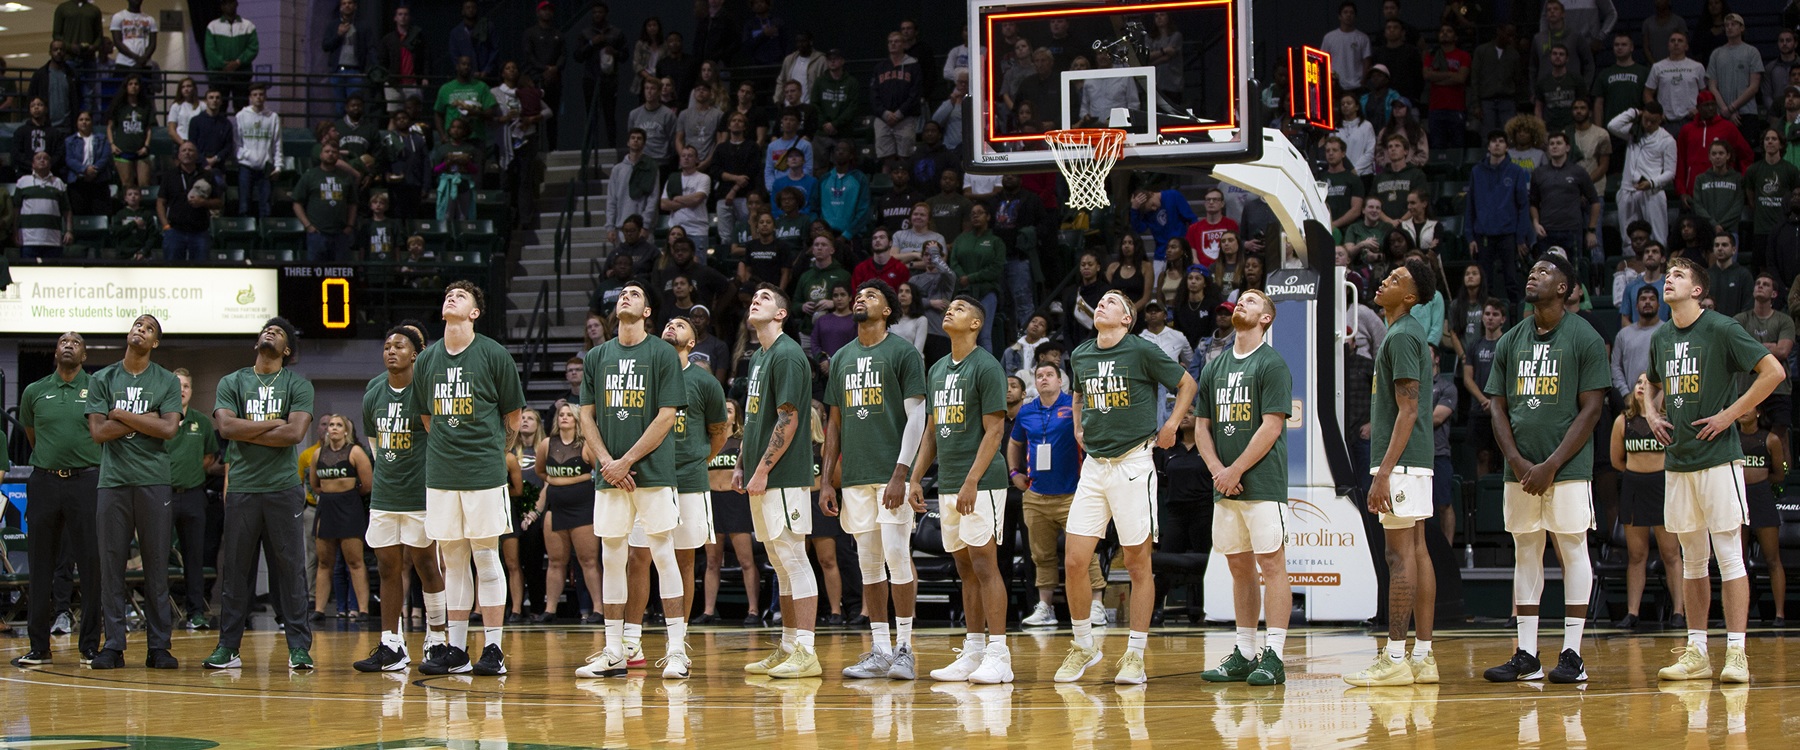 On Friday, Oct. 25, several thousand fans packed Halton arena as the Charlotte 49ers hosted the Georgia Bulldogs in a benefit exhibition basketball game. Proceeds from the game went to the April 30th Remembrance Fund